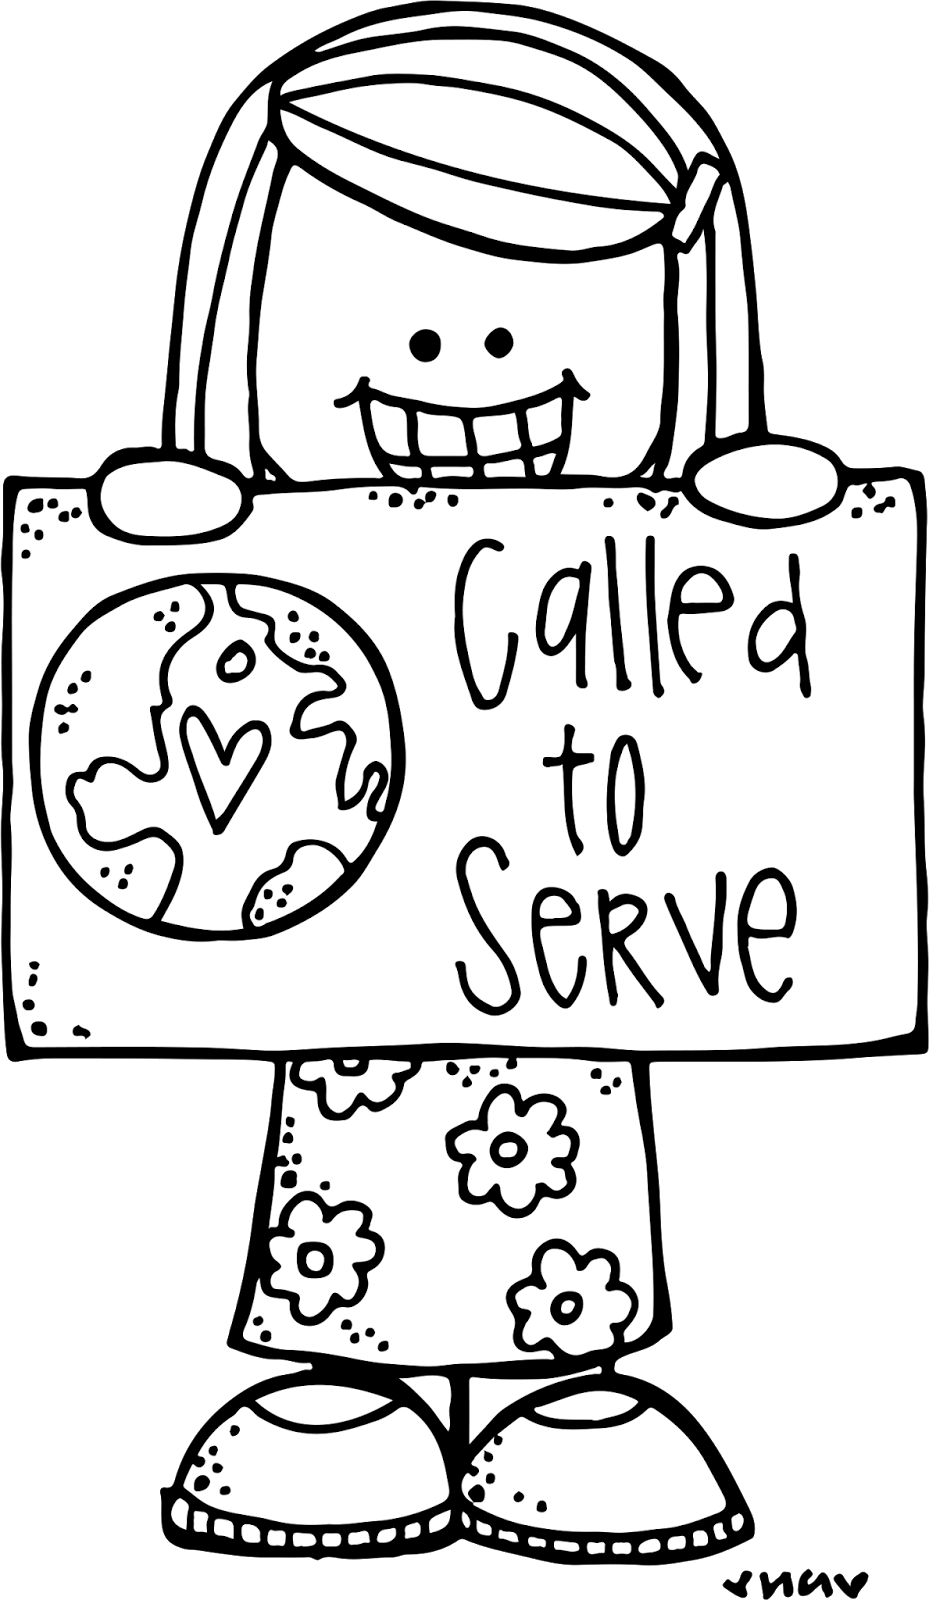 Missionary clipart called to serve. Melonheadz lds illustrating general